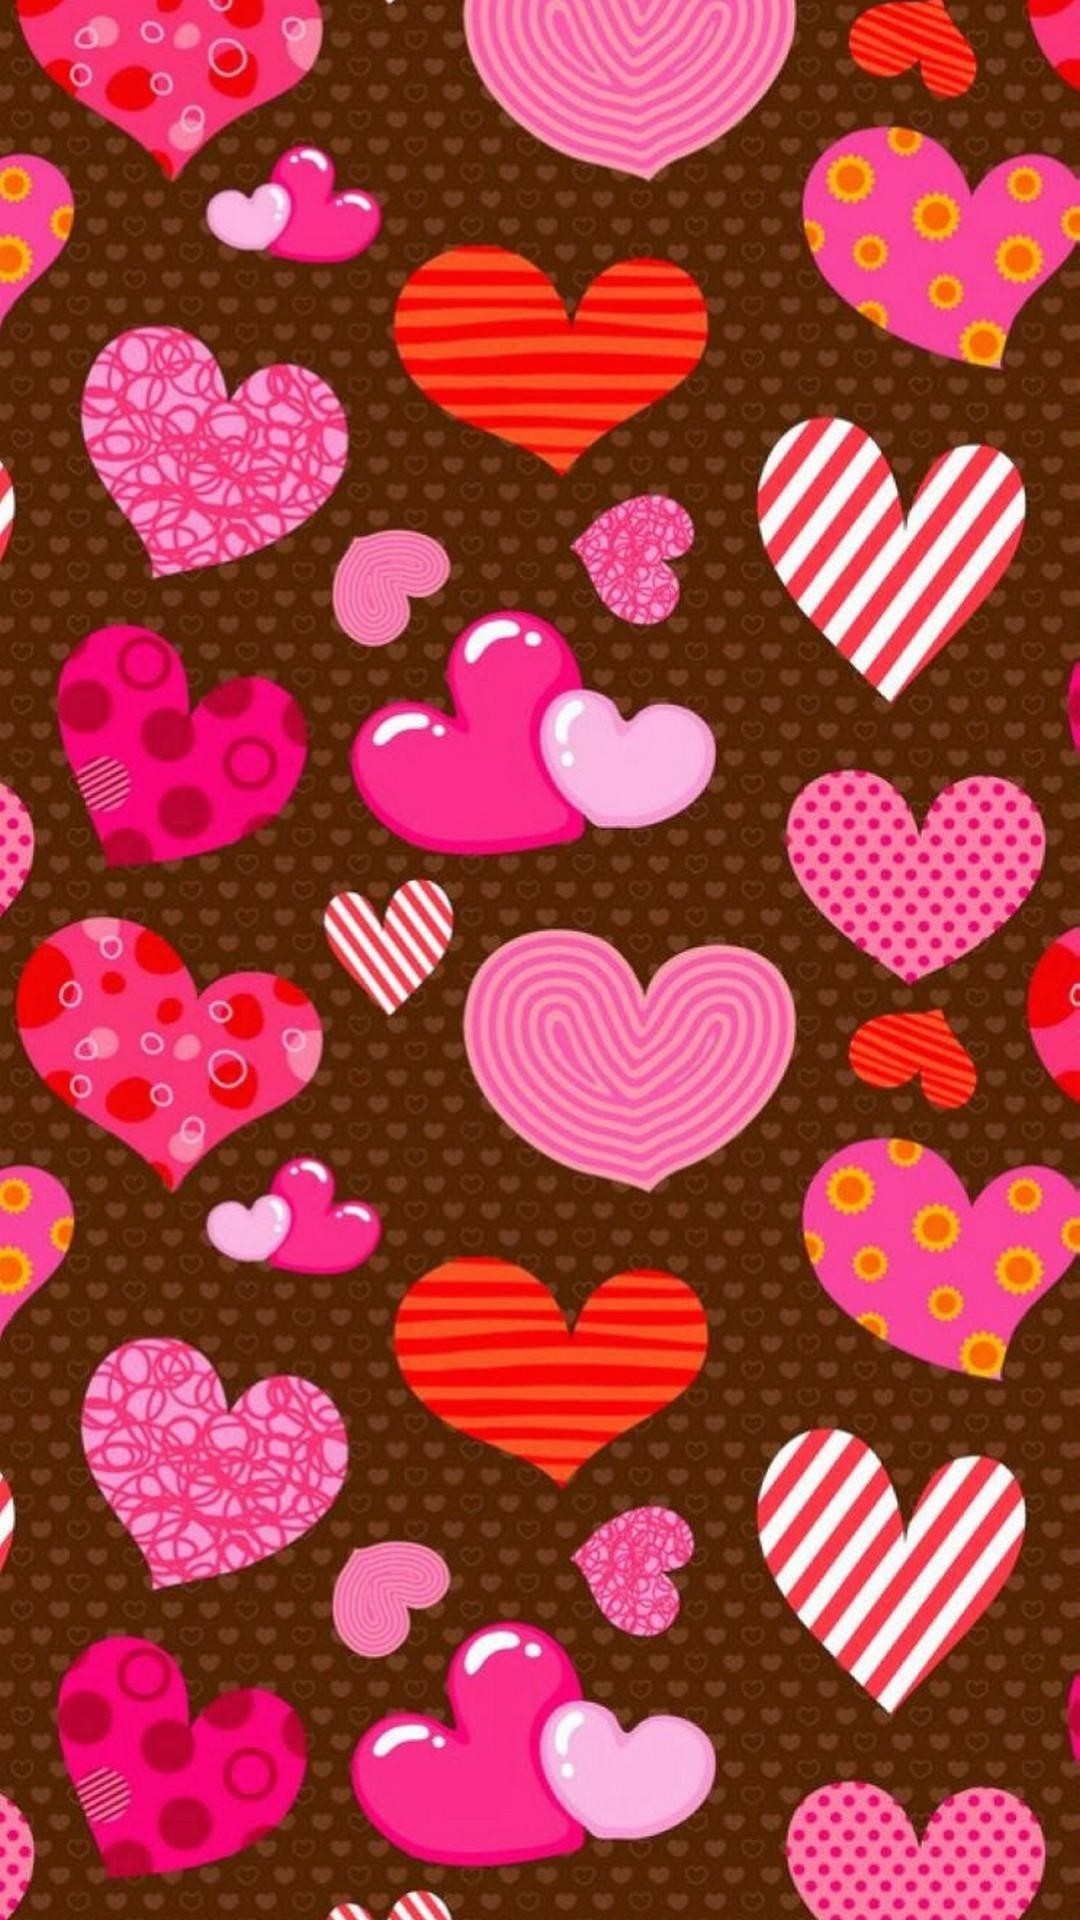 Valentines hd wallpaper for mobile